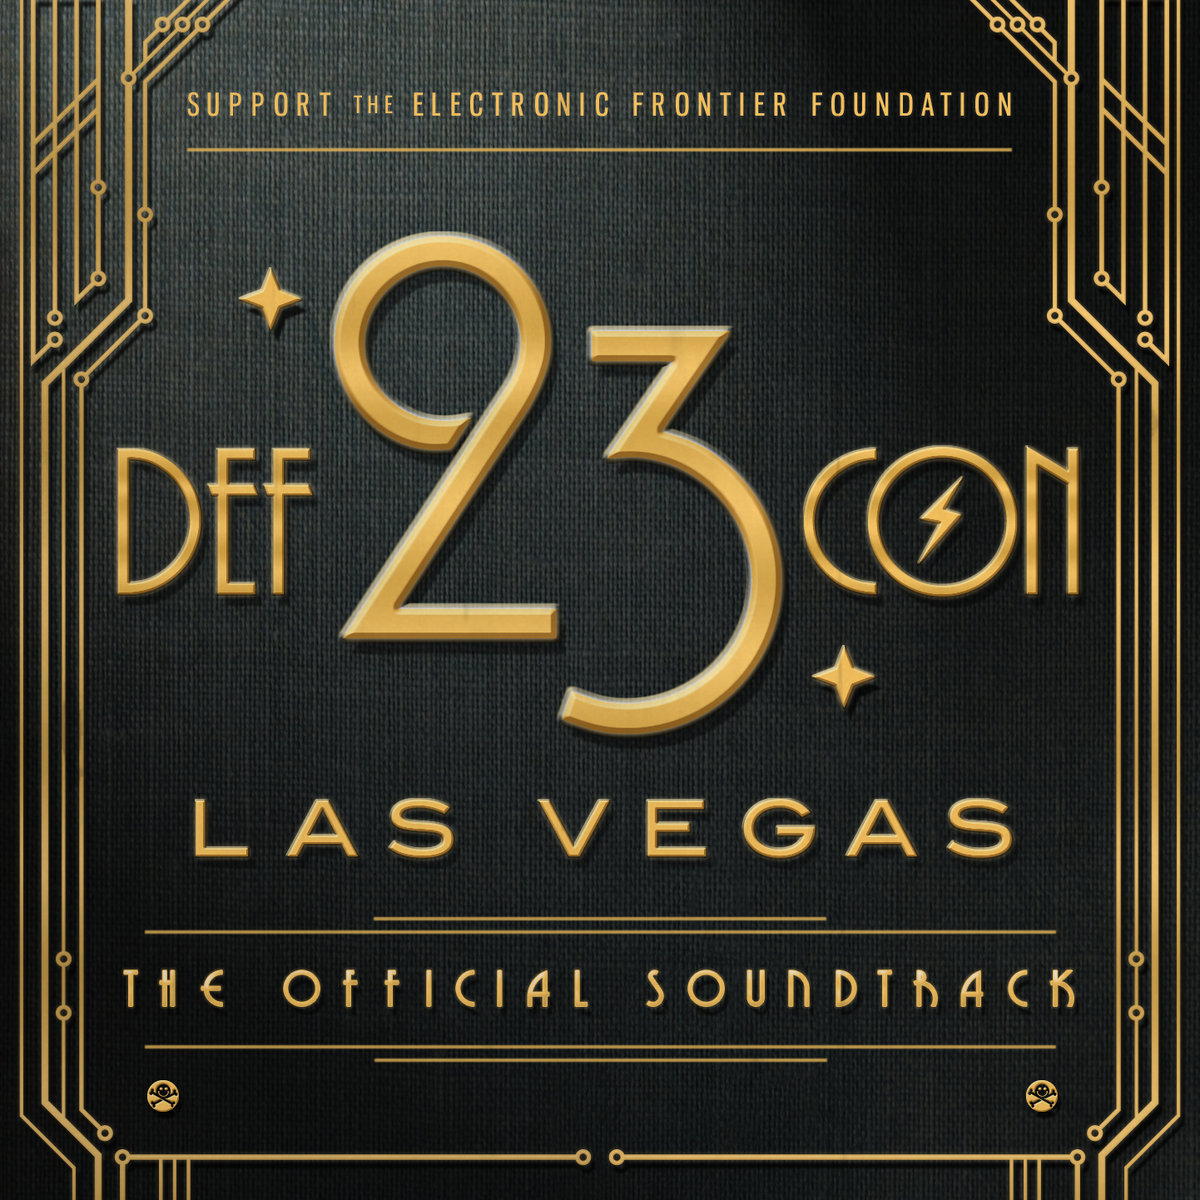 Soul Veggies - Eye In The Sky @ 'DEF CON 23: The Official Soundtrack' album (bass, charity)